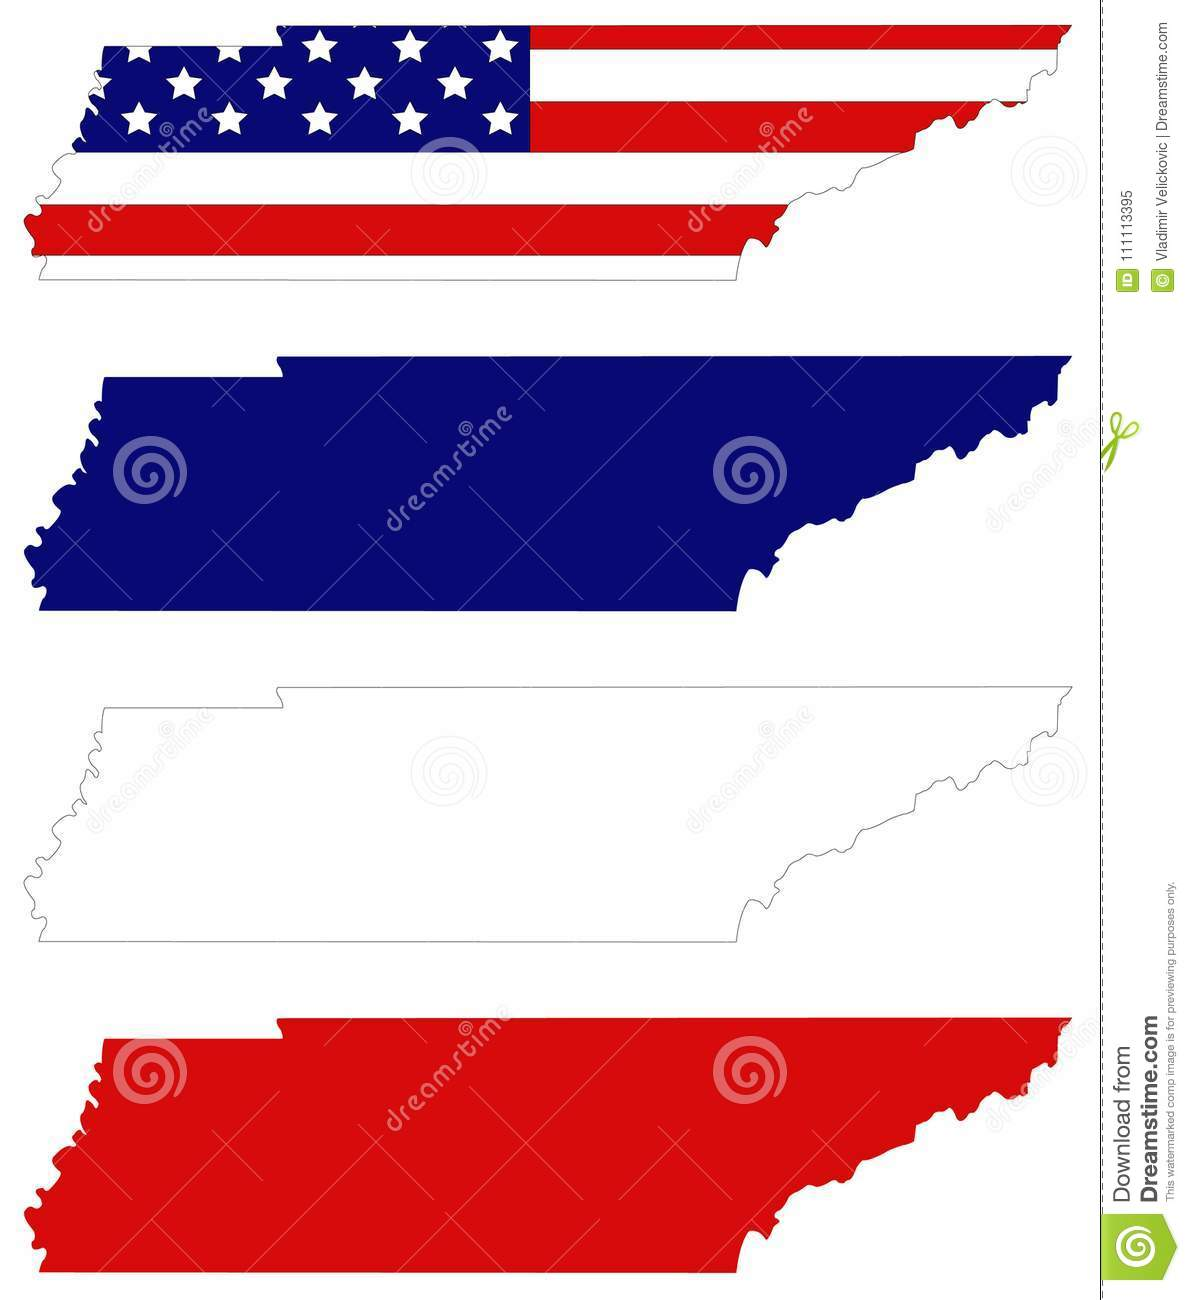 Tennessee Map With USA Flag - State In The Southeastern Region Of ...